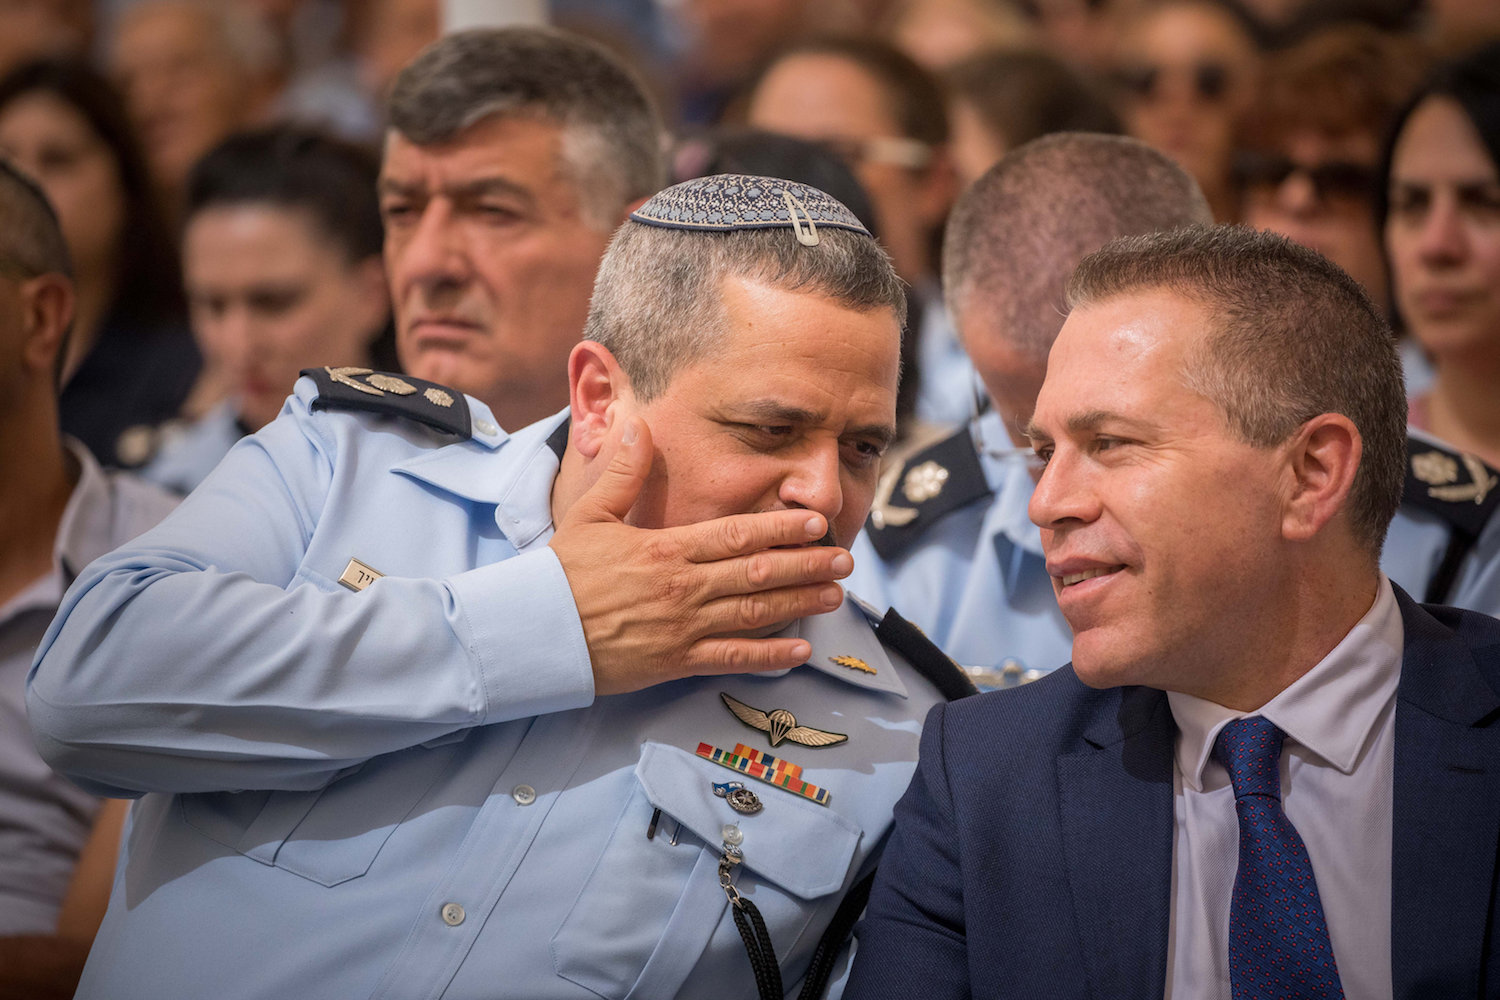 Minister of Public Security Gilad Erdan seen with Israeli Police Chief Police Roni Alsheikh on September 5, 2018. (Yonatan Sindel/Flash90)